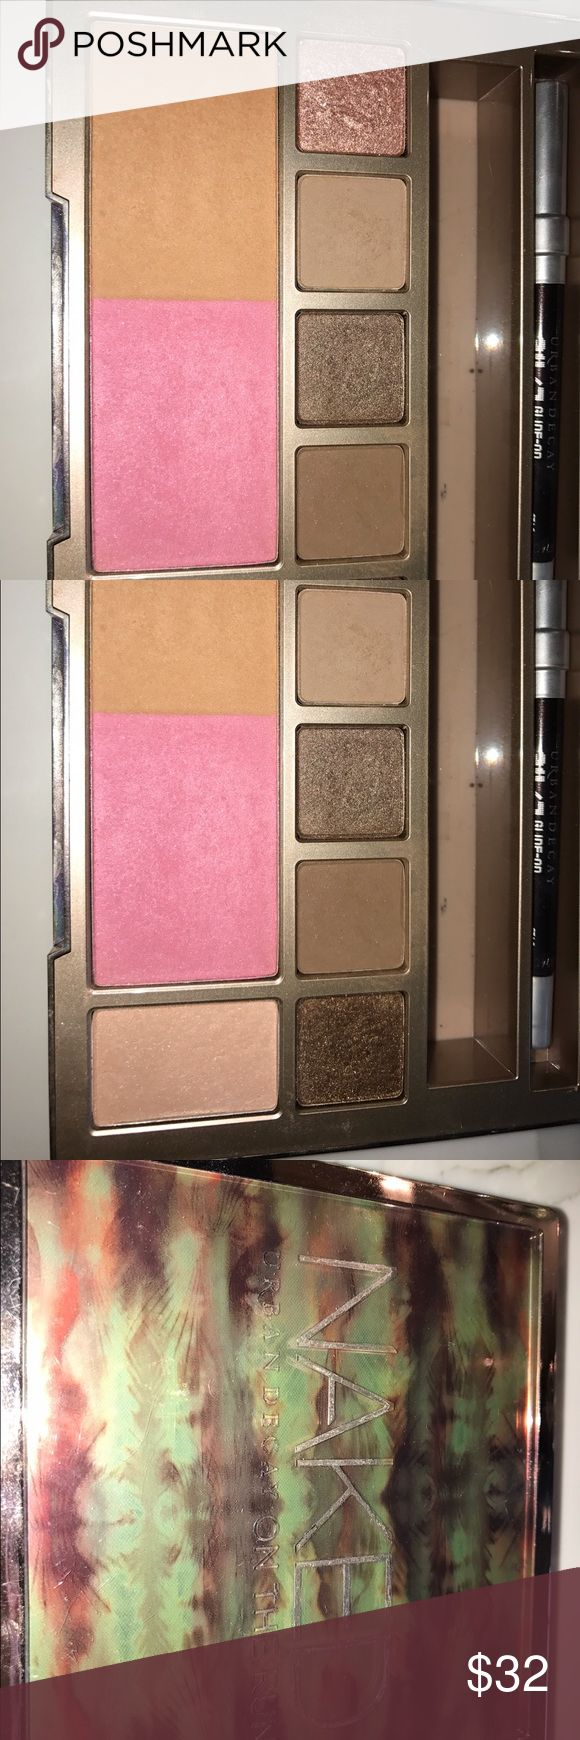 Urban Decay Naked On The Run Palette Great for travel✨5 Eyeshadows : dive, fix, resist, dare, stun plus blush and bronzer 💕1 eyeliner : stag✨do not have lipgloss and mascara and I do not have a box Urban Decay Makeup